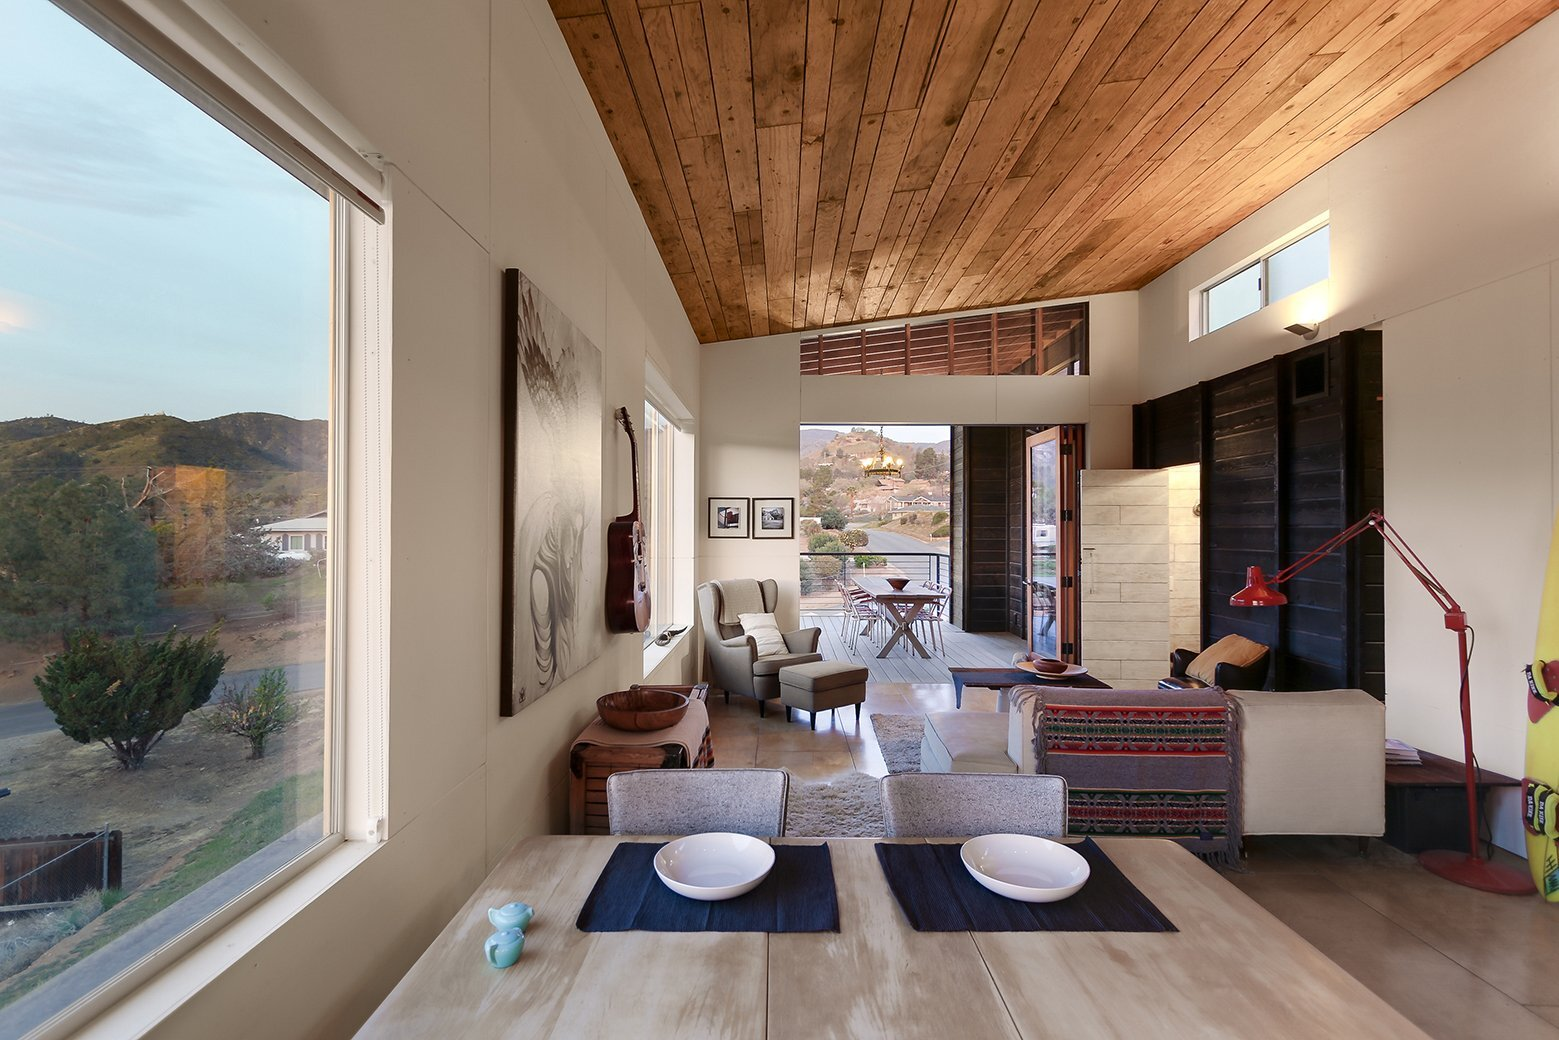 510 Cabin - Small House - Hunter Leggitt Studio - California - Living Area - Humble Homes